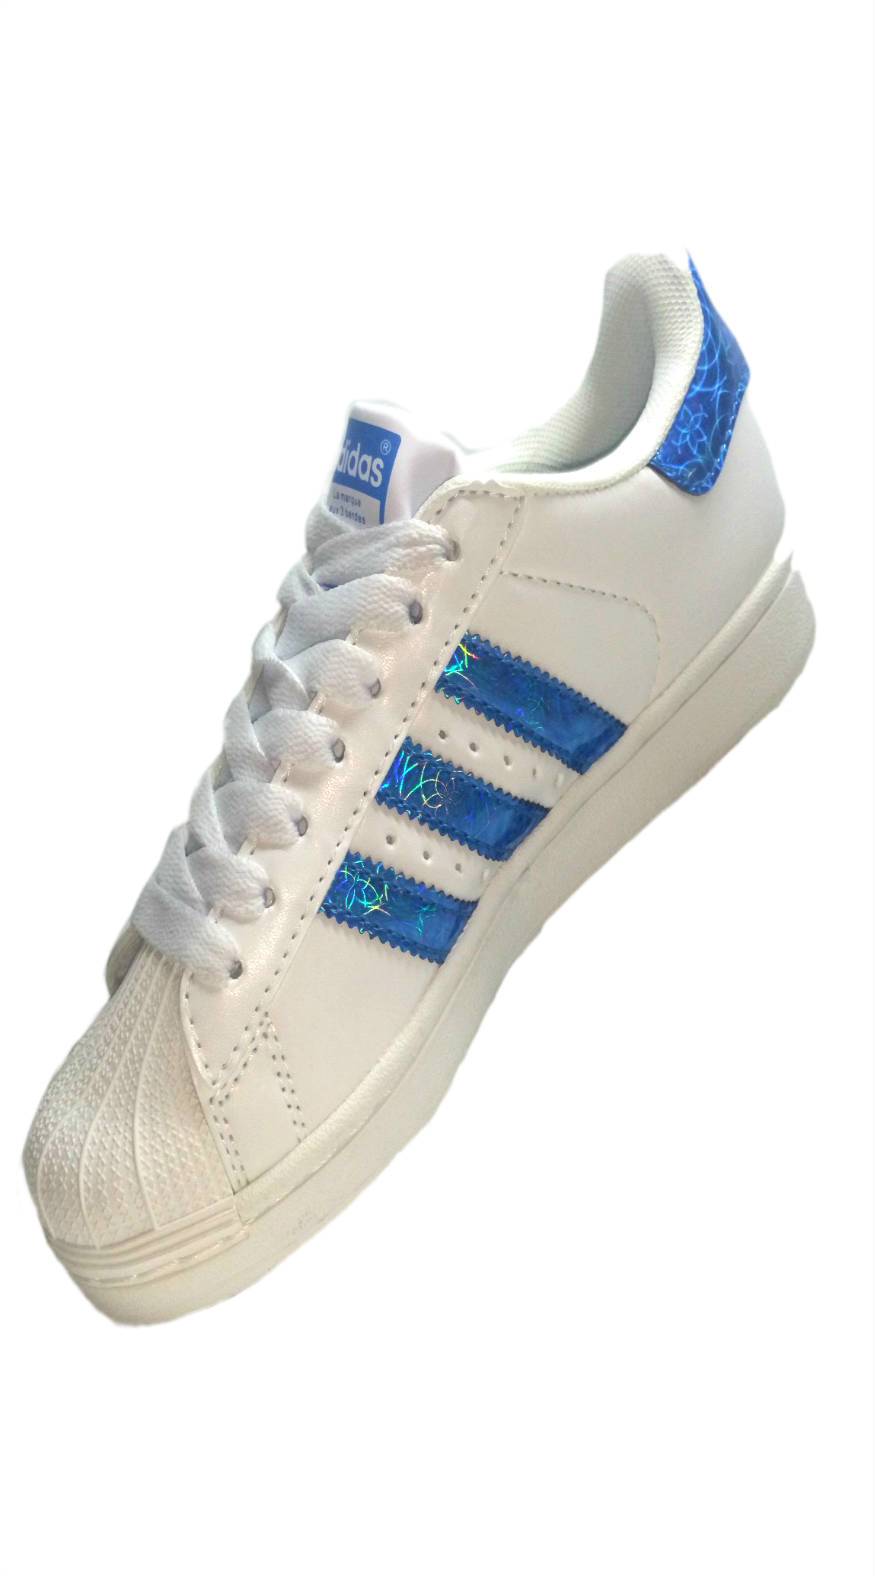 Adidas Superstar White/Blue Stripes